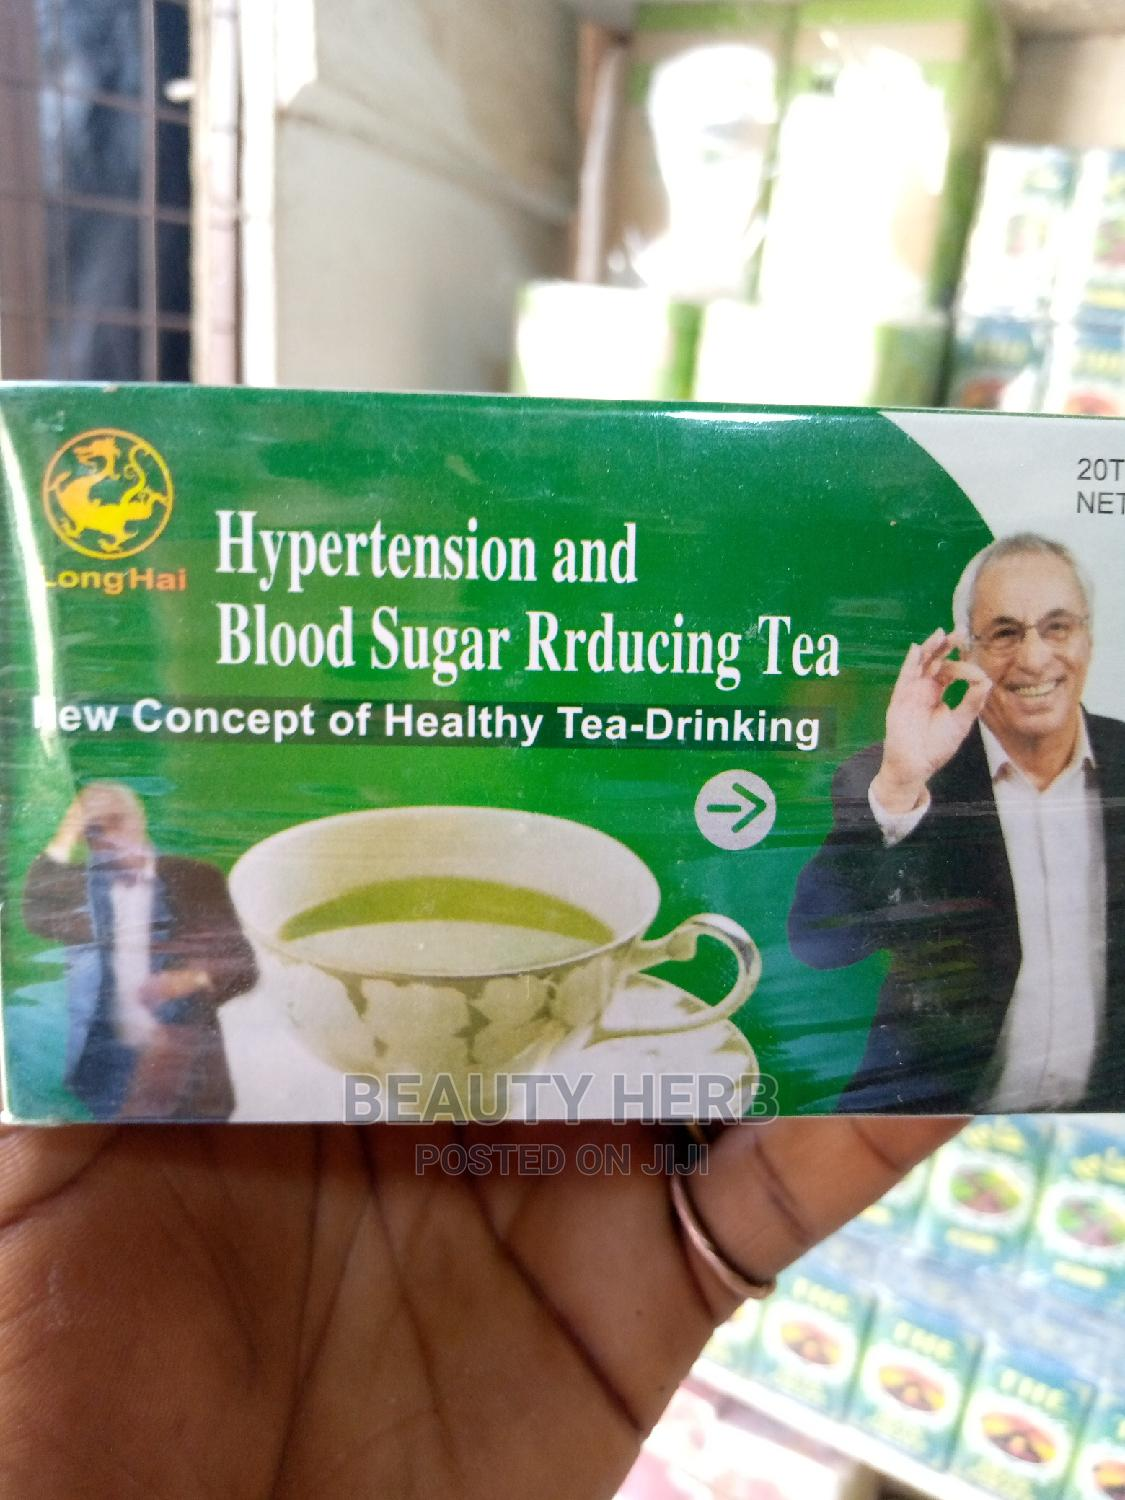 Herbal Tea for Hypertension and Blood Sugar Reducing